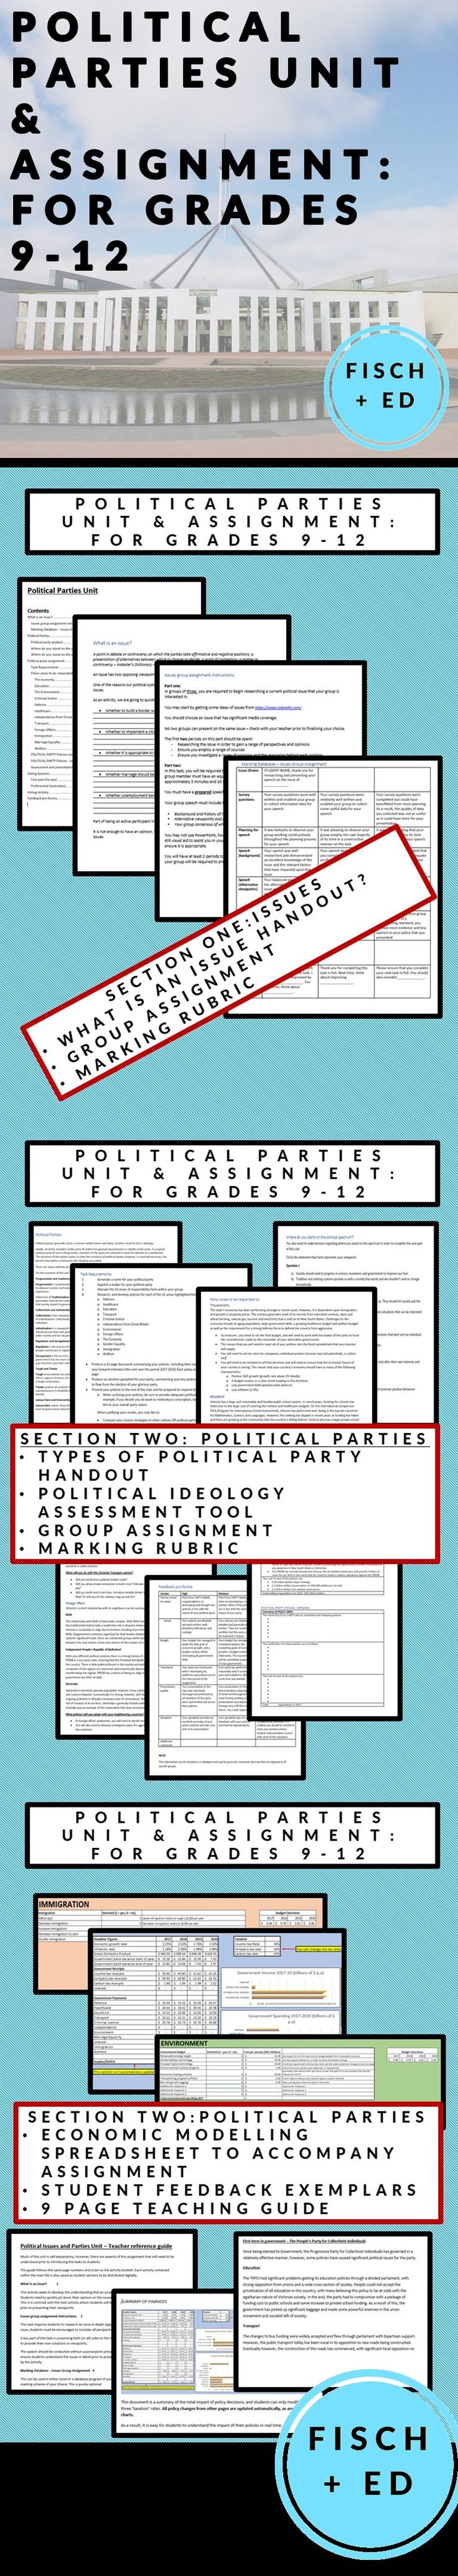 So much more than your standard political parties assignment! Challenge and engage your students with this comprehensive political parties package for high school students.